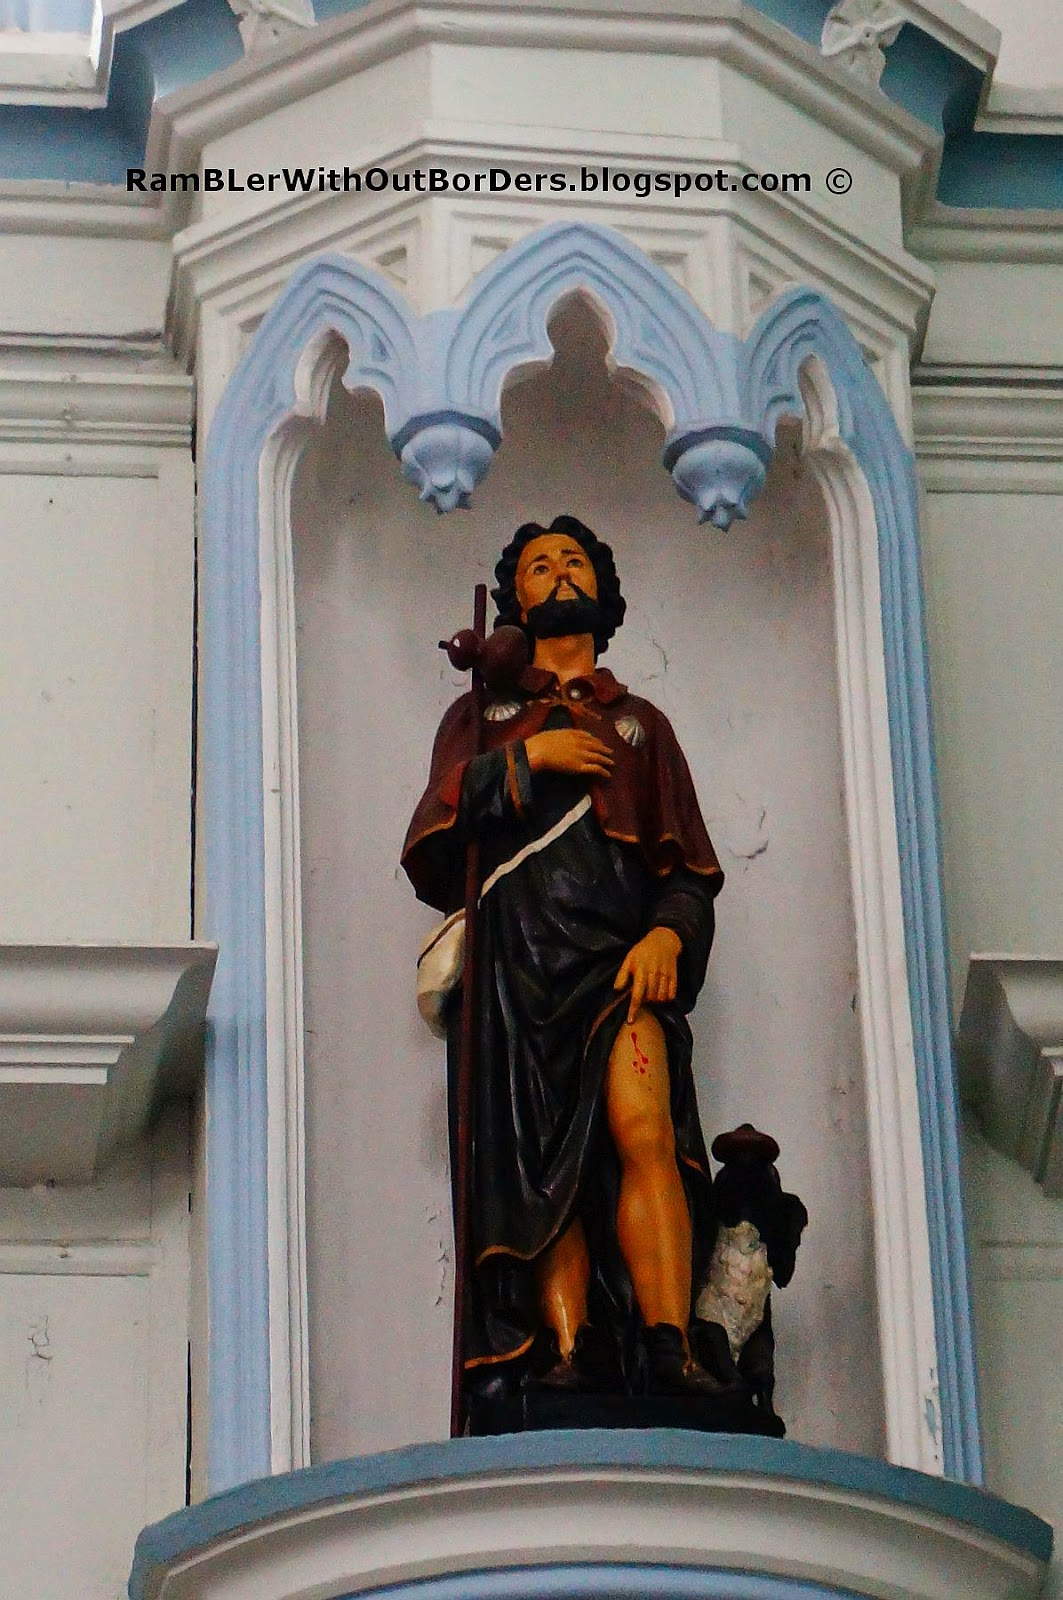 statue, St Joseph's Church, Victoria St, Singapore